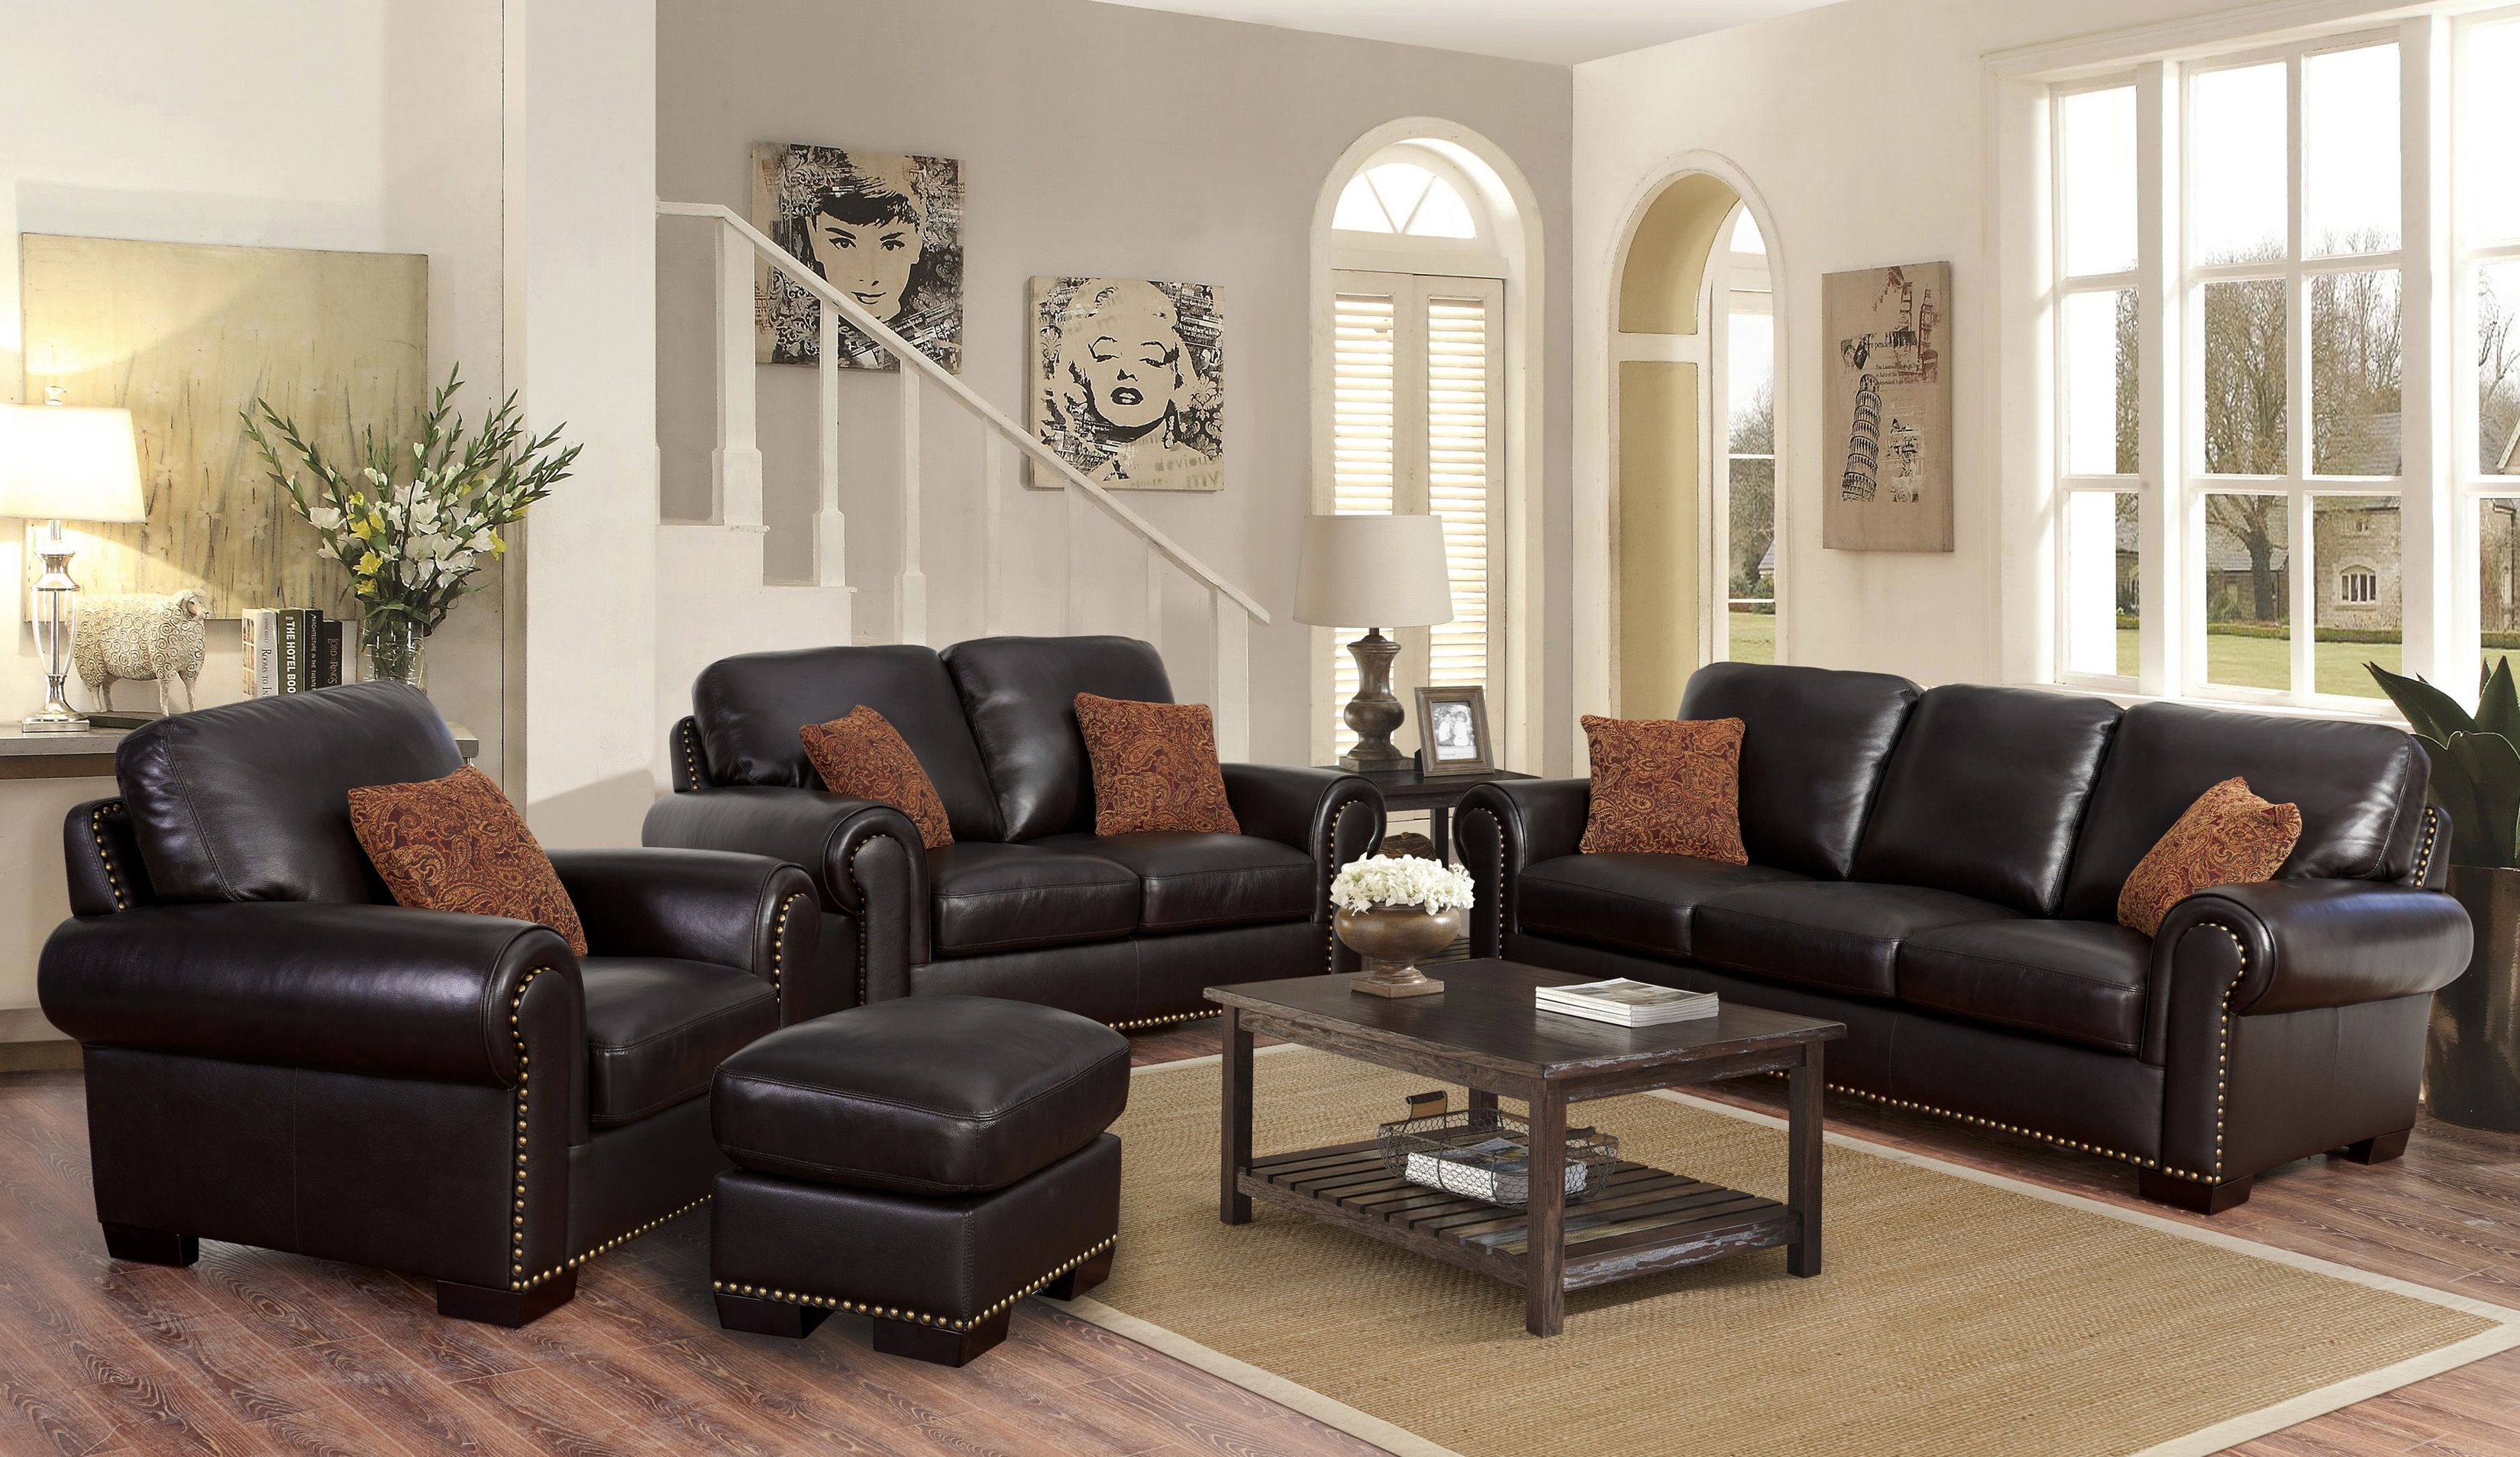 Preston 4 Piece Top Grain Leather Living Room Set in 14 Genius Designs of How to Craft Costco Living Room Sets